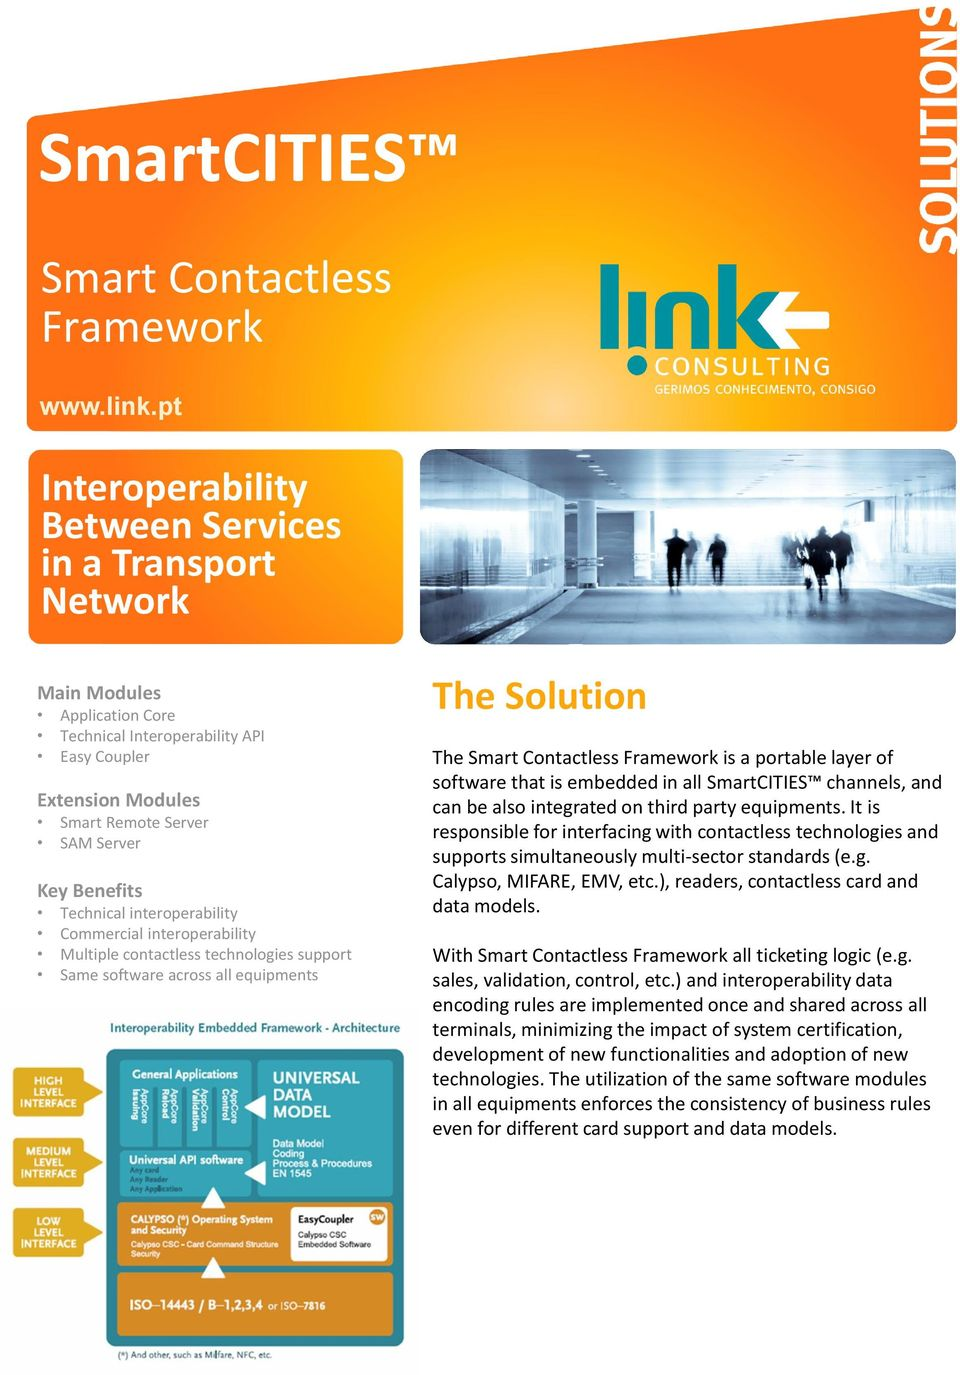 Contactless Framework is a portable layer of software that is embedded in all SmartCITIES channels, and can be also integrated on third party equipments.